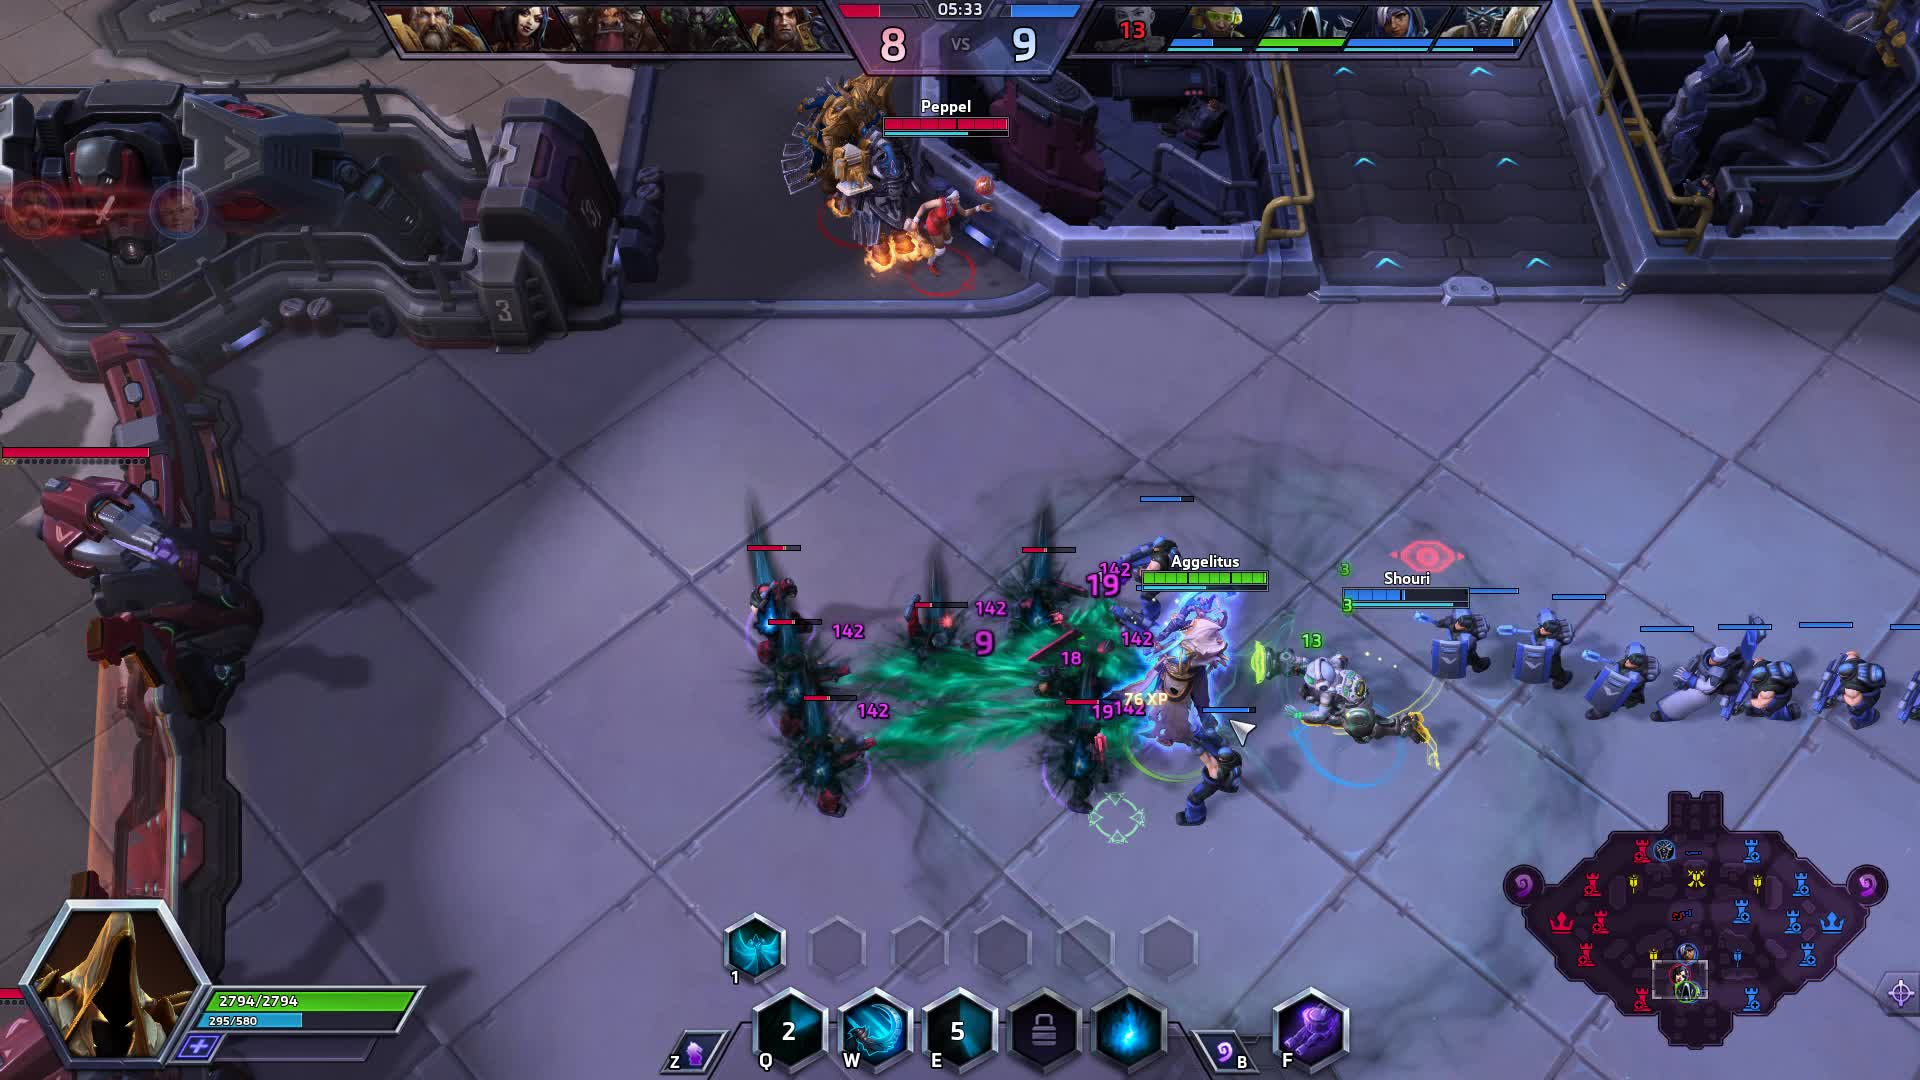 HotS, Clown gank GIFs